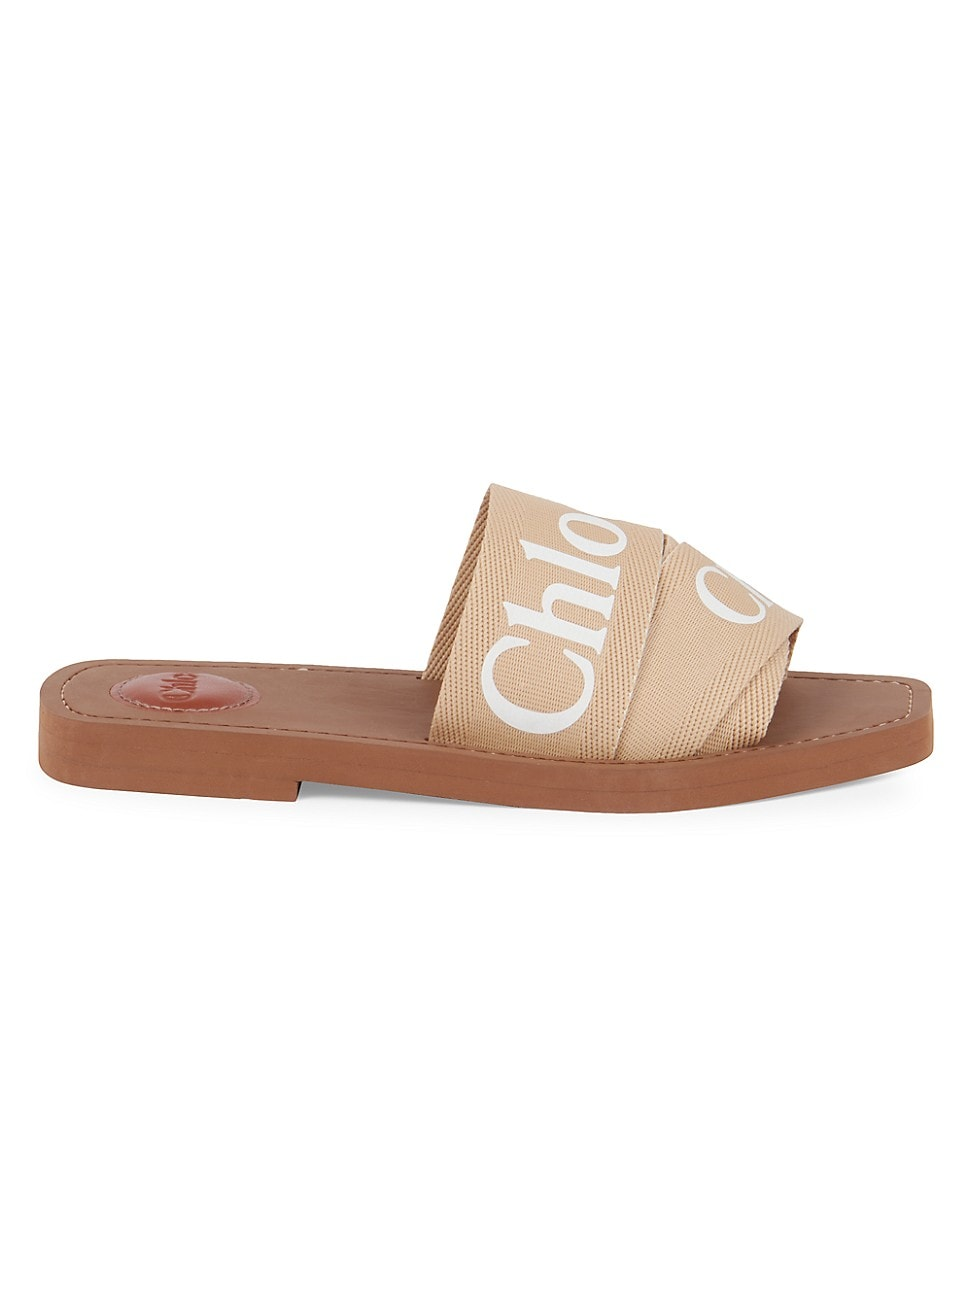 Chloé WOMEN'S WOODY FLAT SANDALS